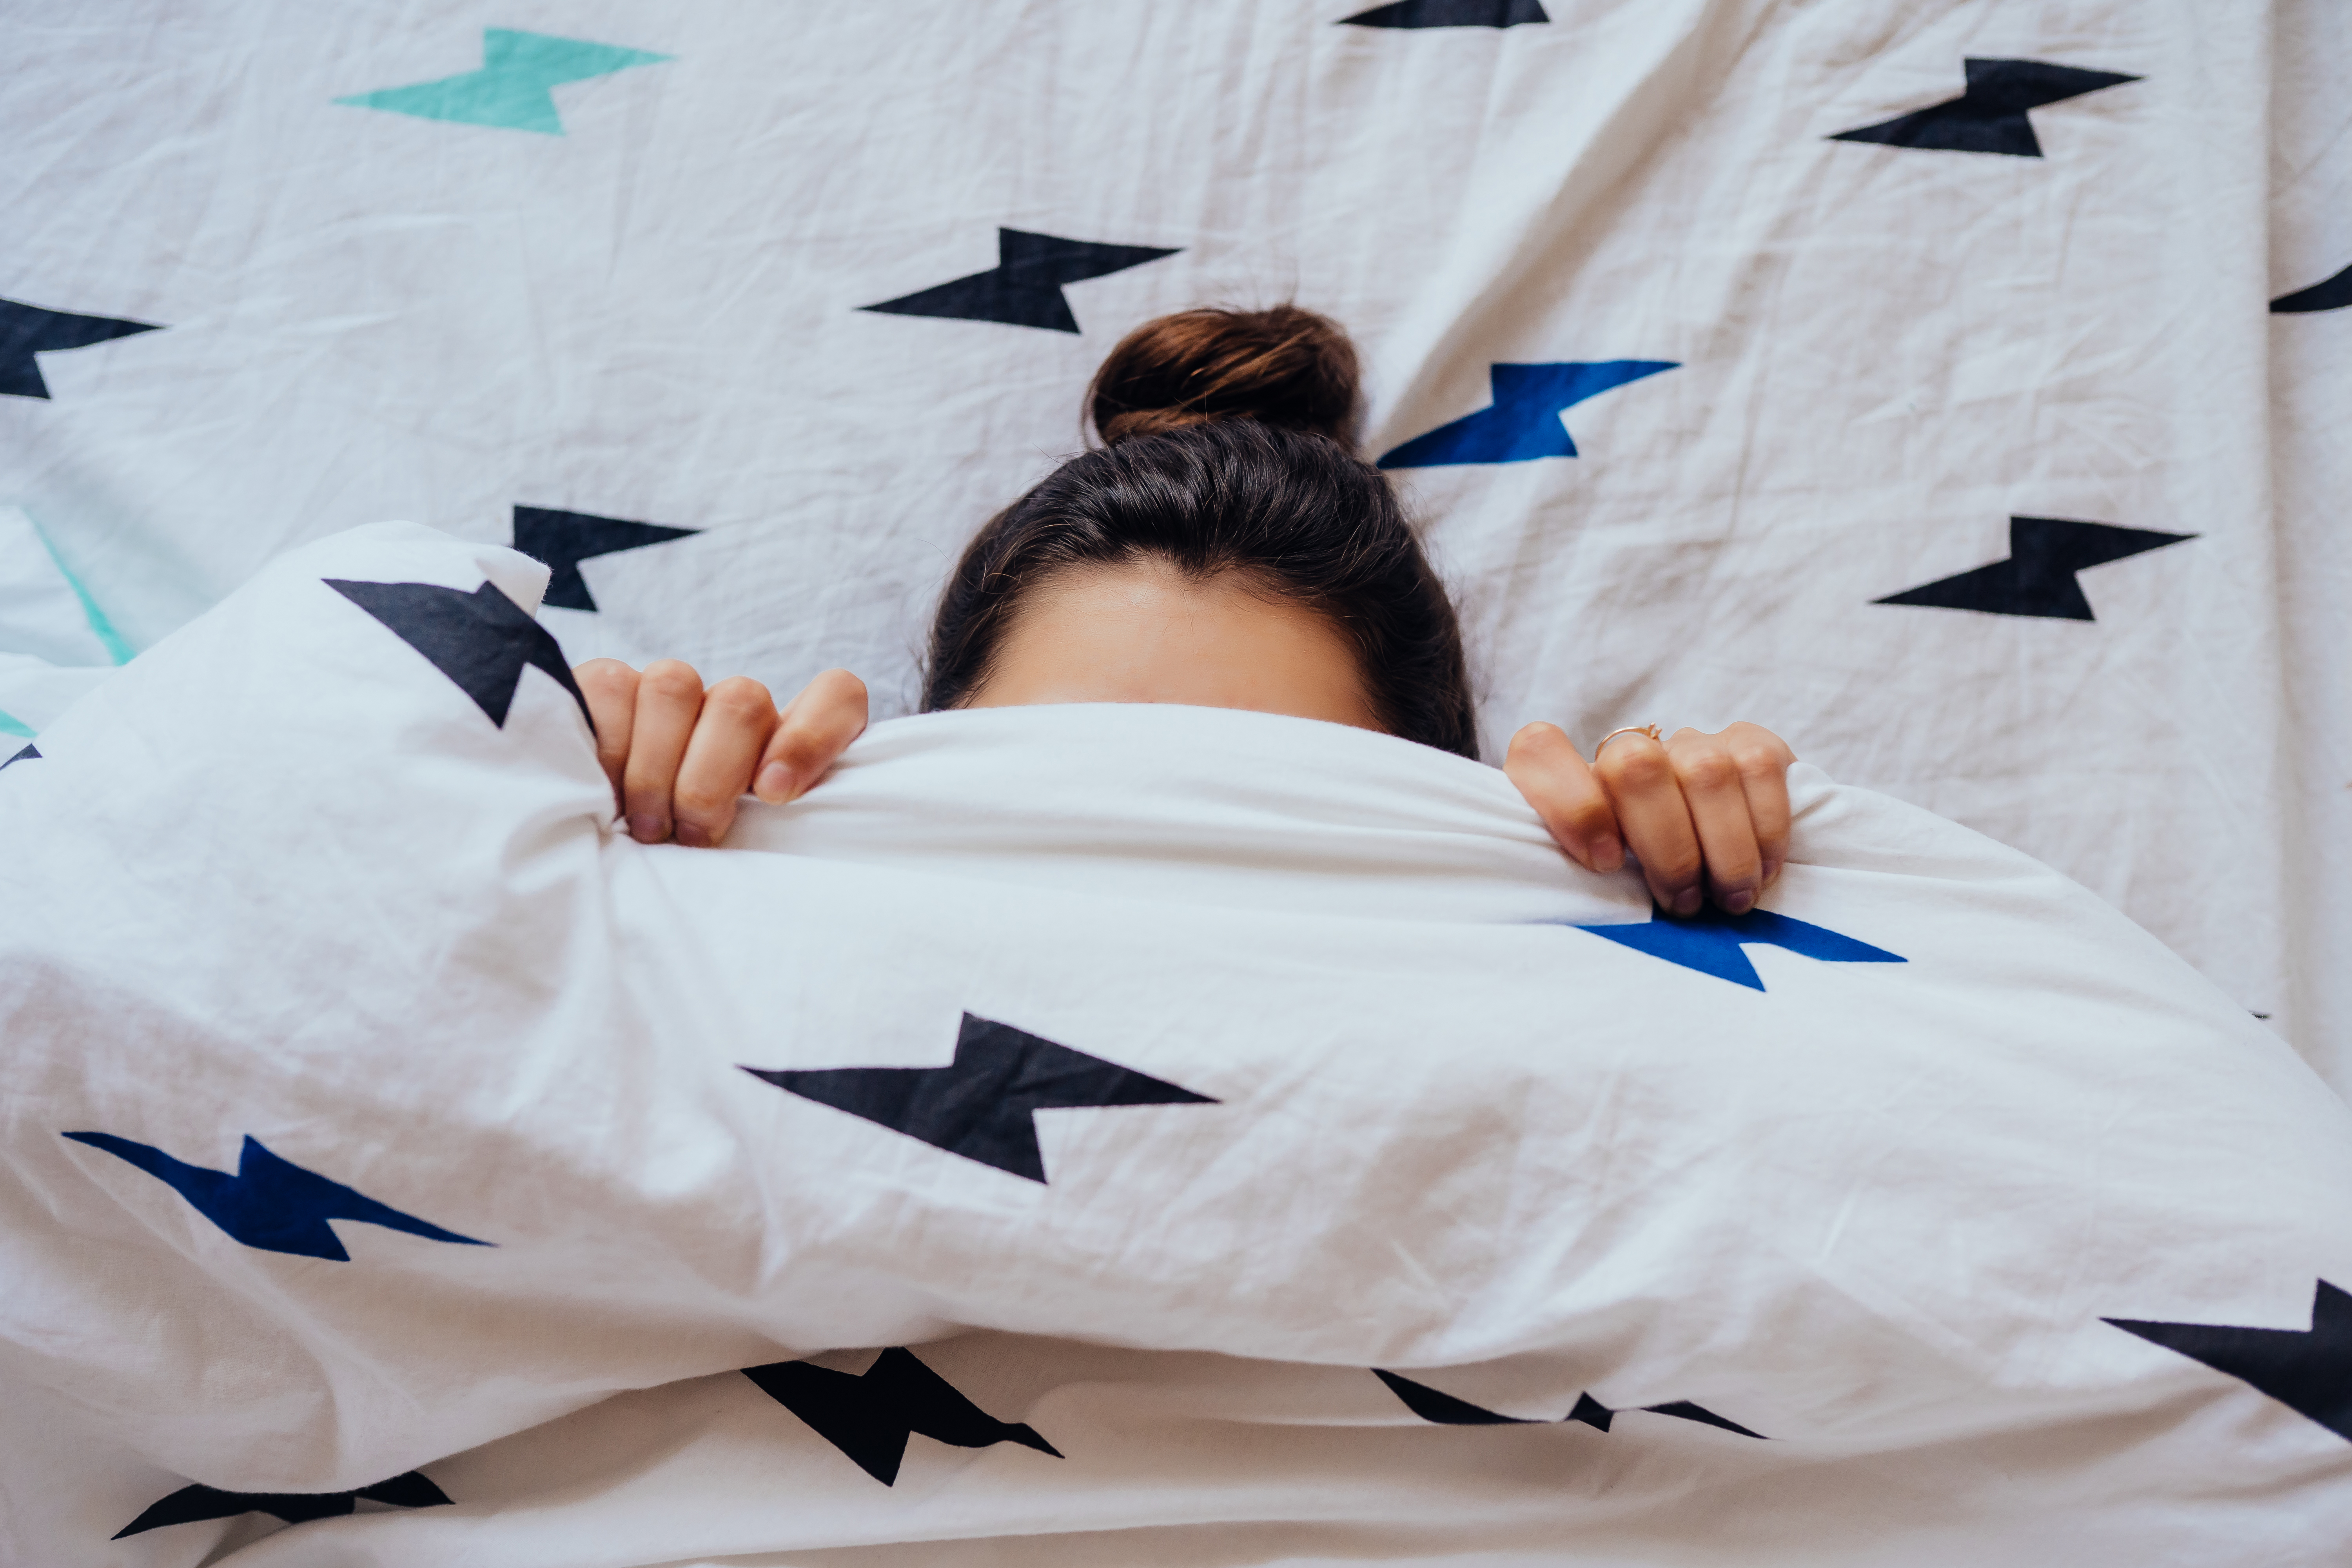 lovely-young-woman-lies-bed-covered-with-blanket